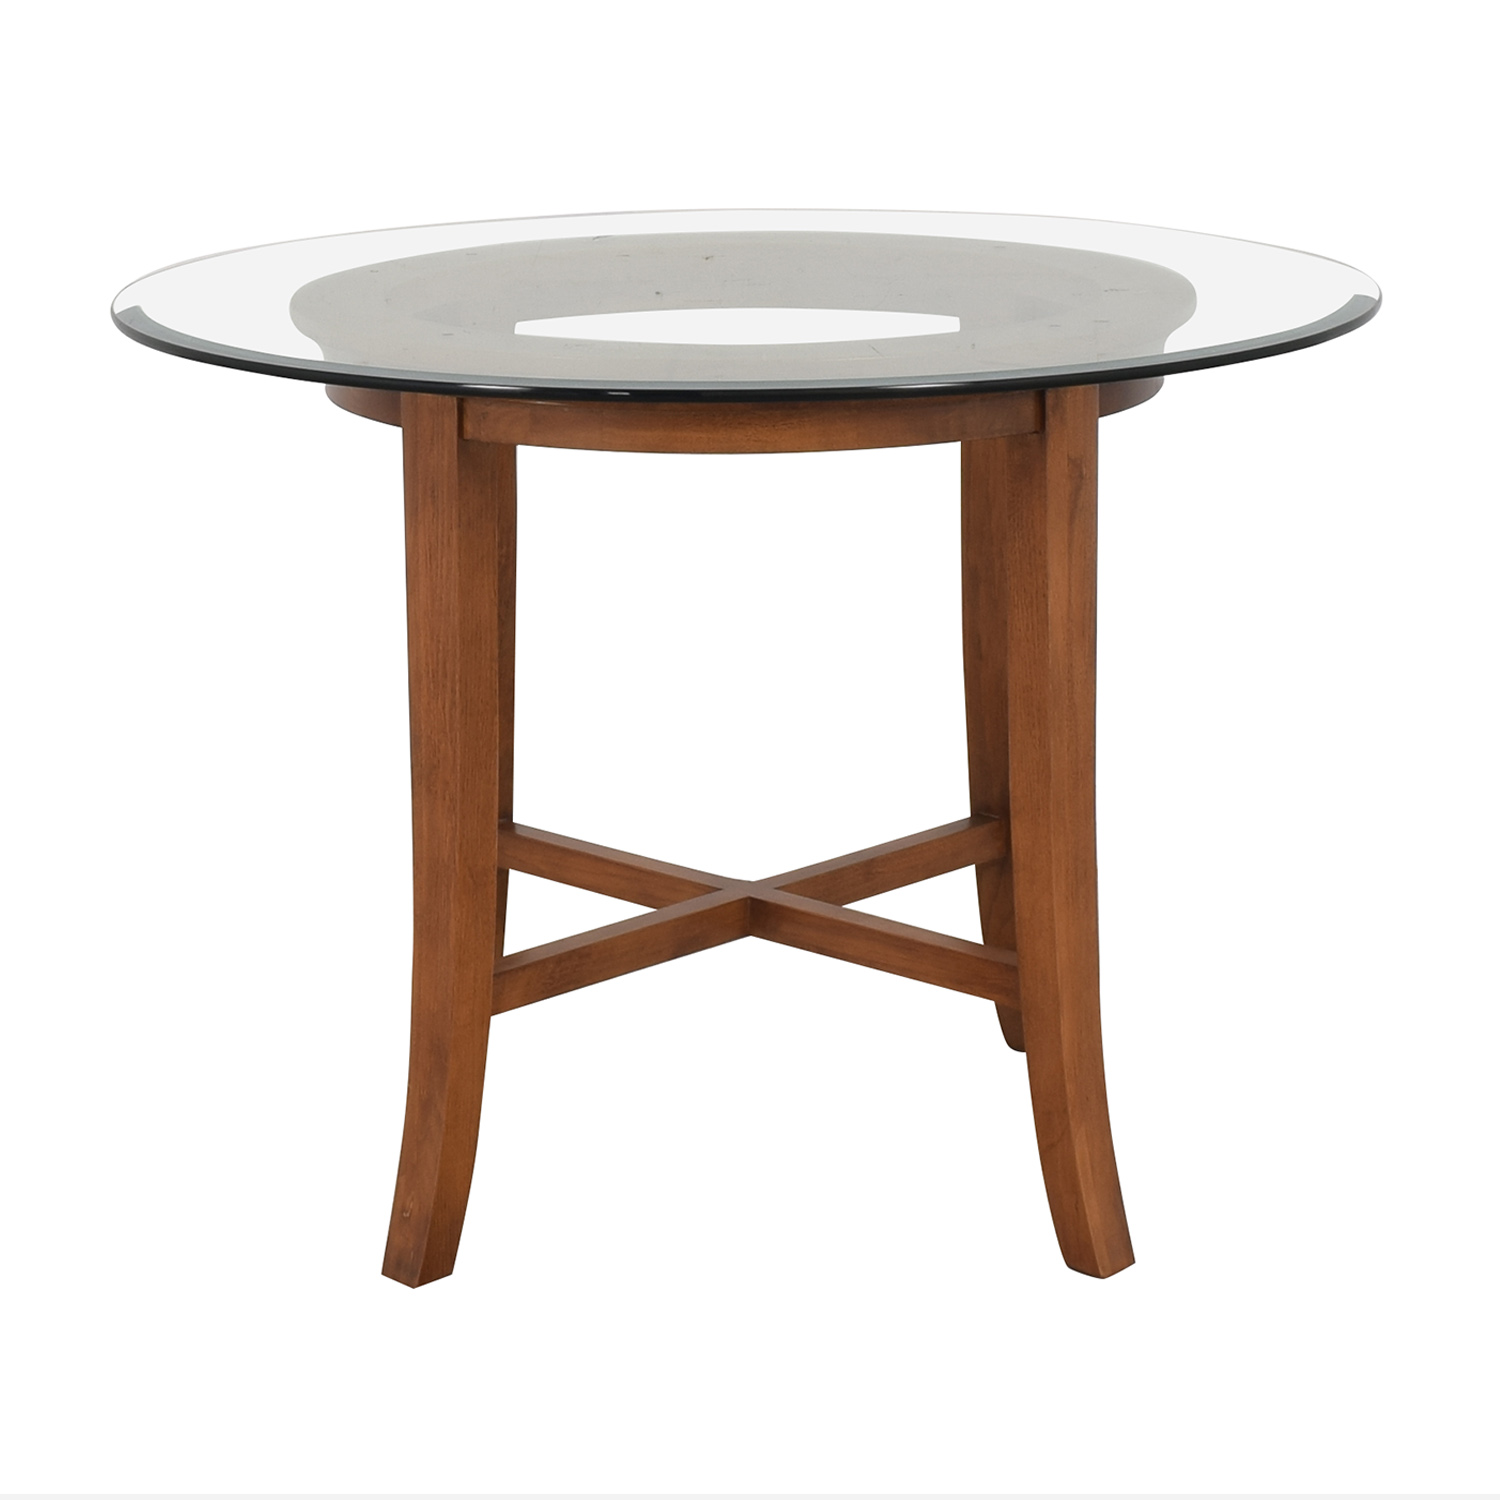 shop Crate & Barrel Halo Round Dining Table Crate & Barrel